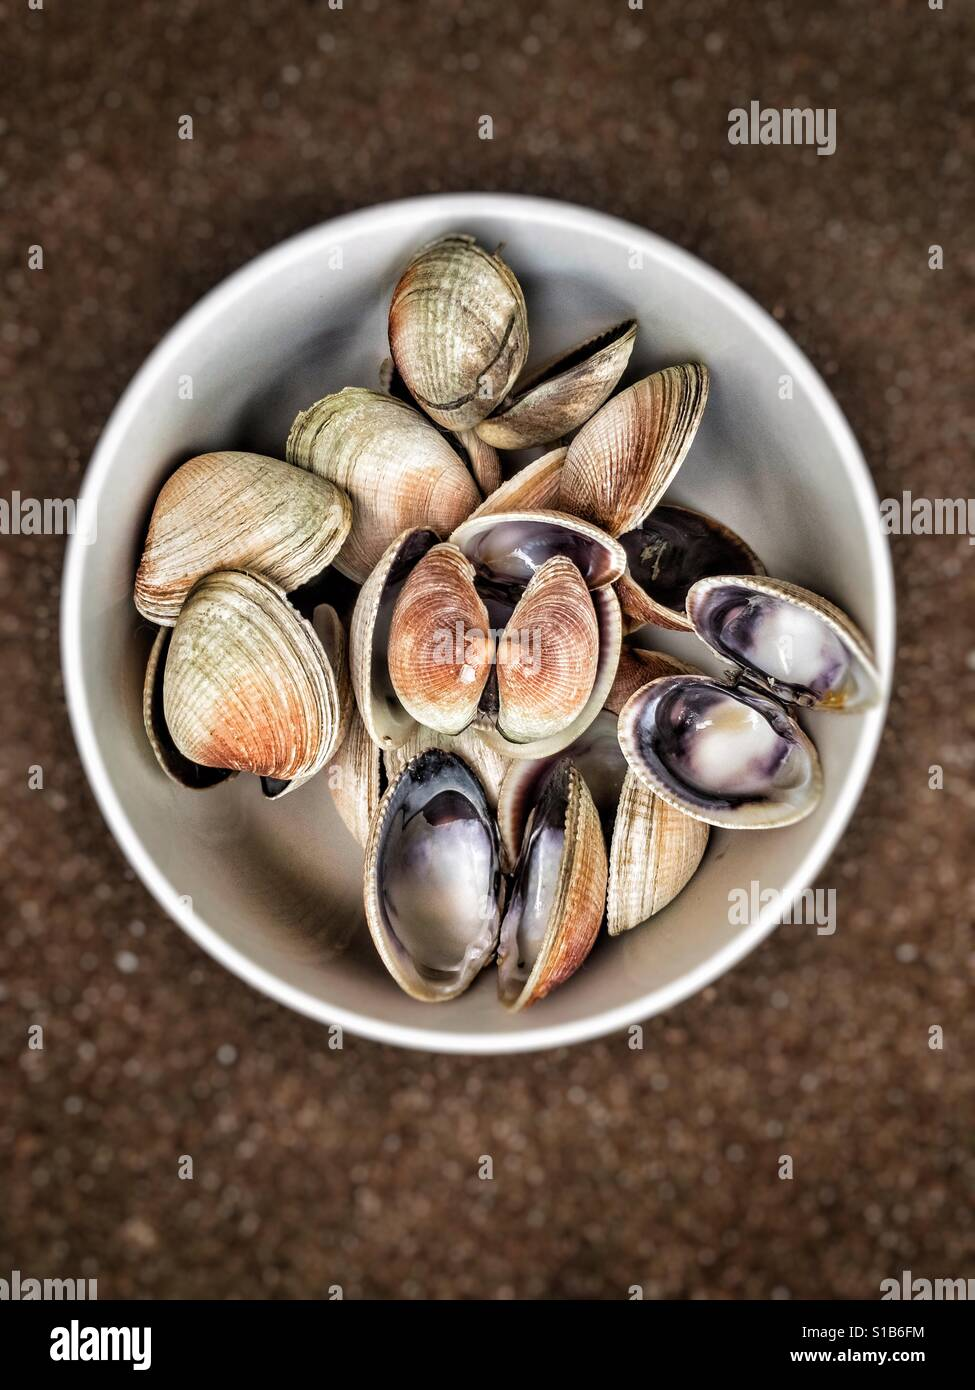 A bowl of empty clams shell, after a meal. - Stock Image